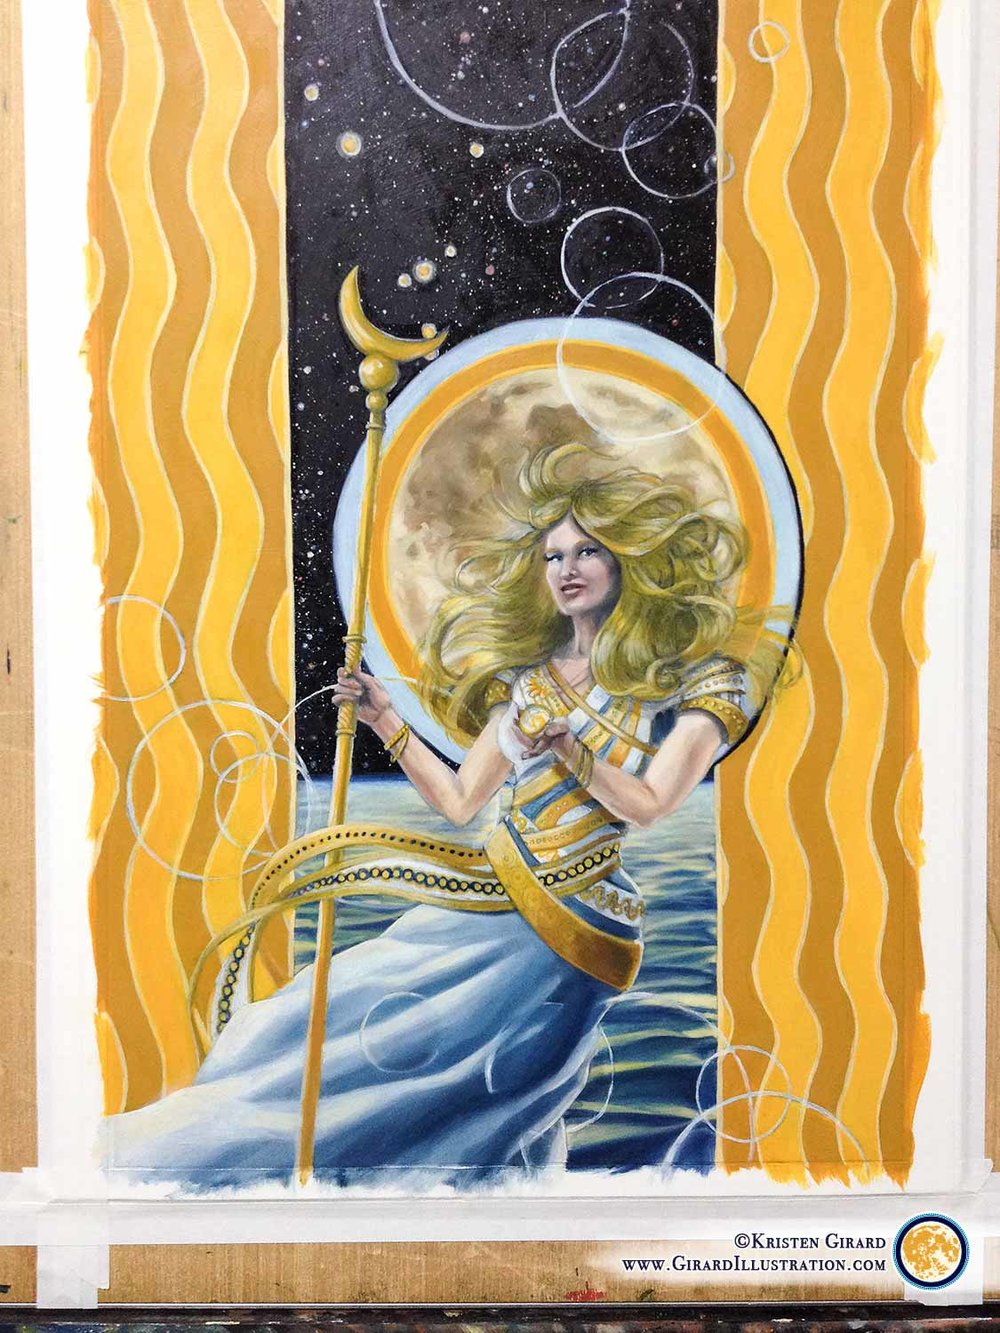 Almost done! Just a few finishing touches to go and this goddess will be ready to shine! See the finished painting of Air Magic in Natural Magic Collection by Kristen Girard by clicking here. © Kristen Girard.